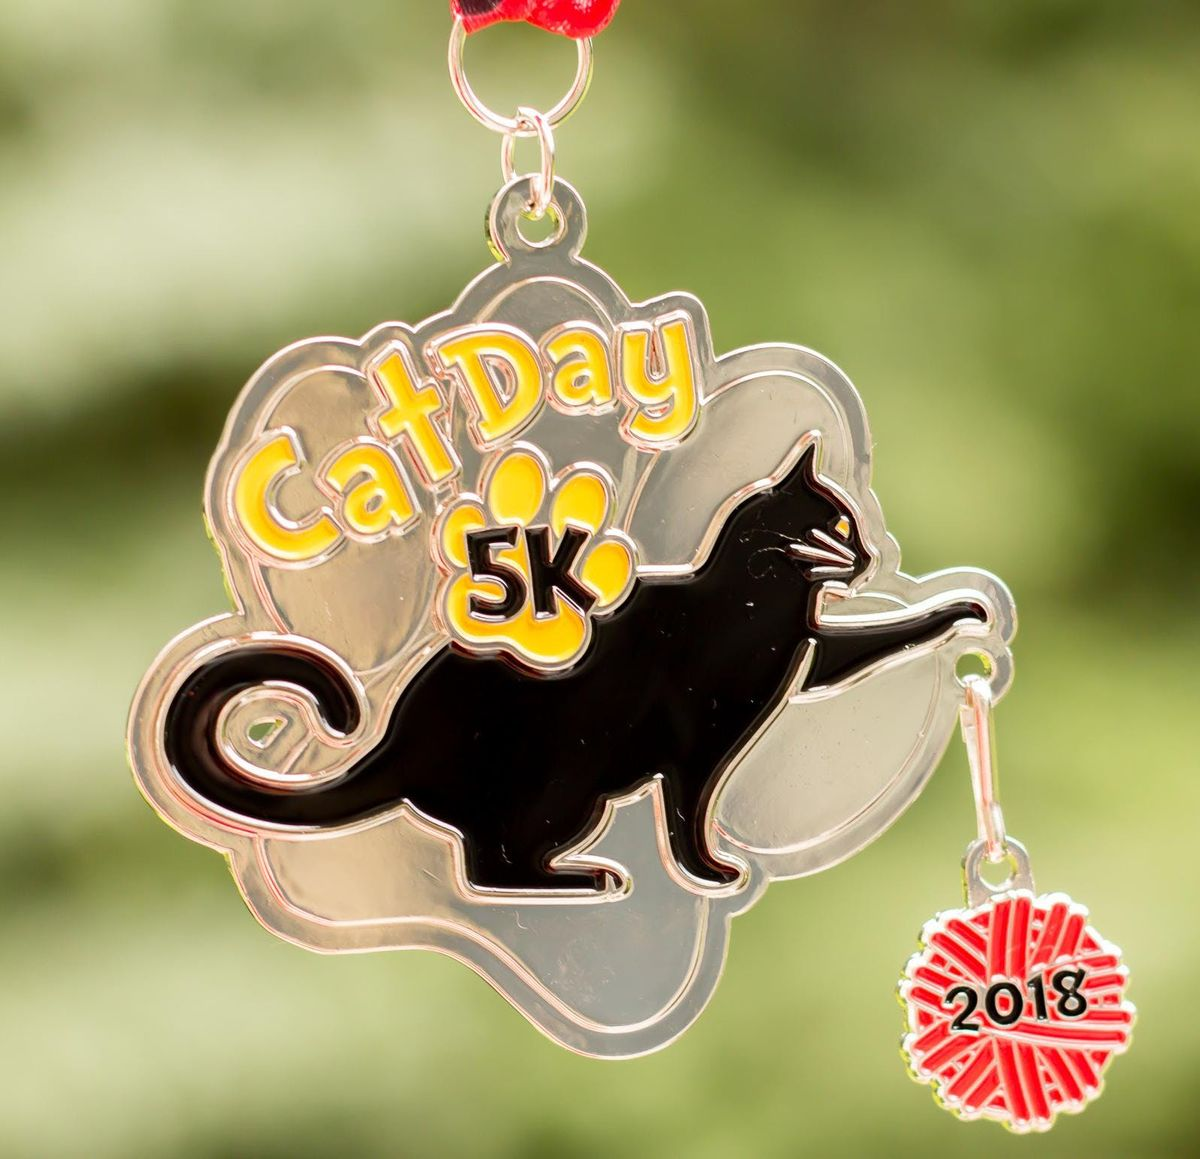 Now Only 10 Cat Day 5K & 10K - Chandler